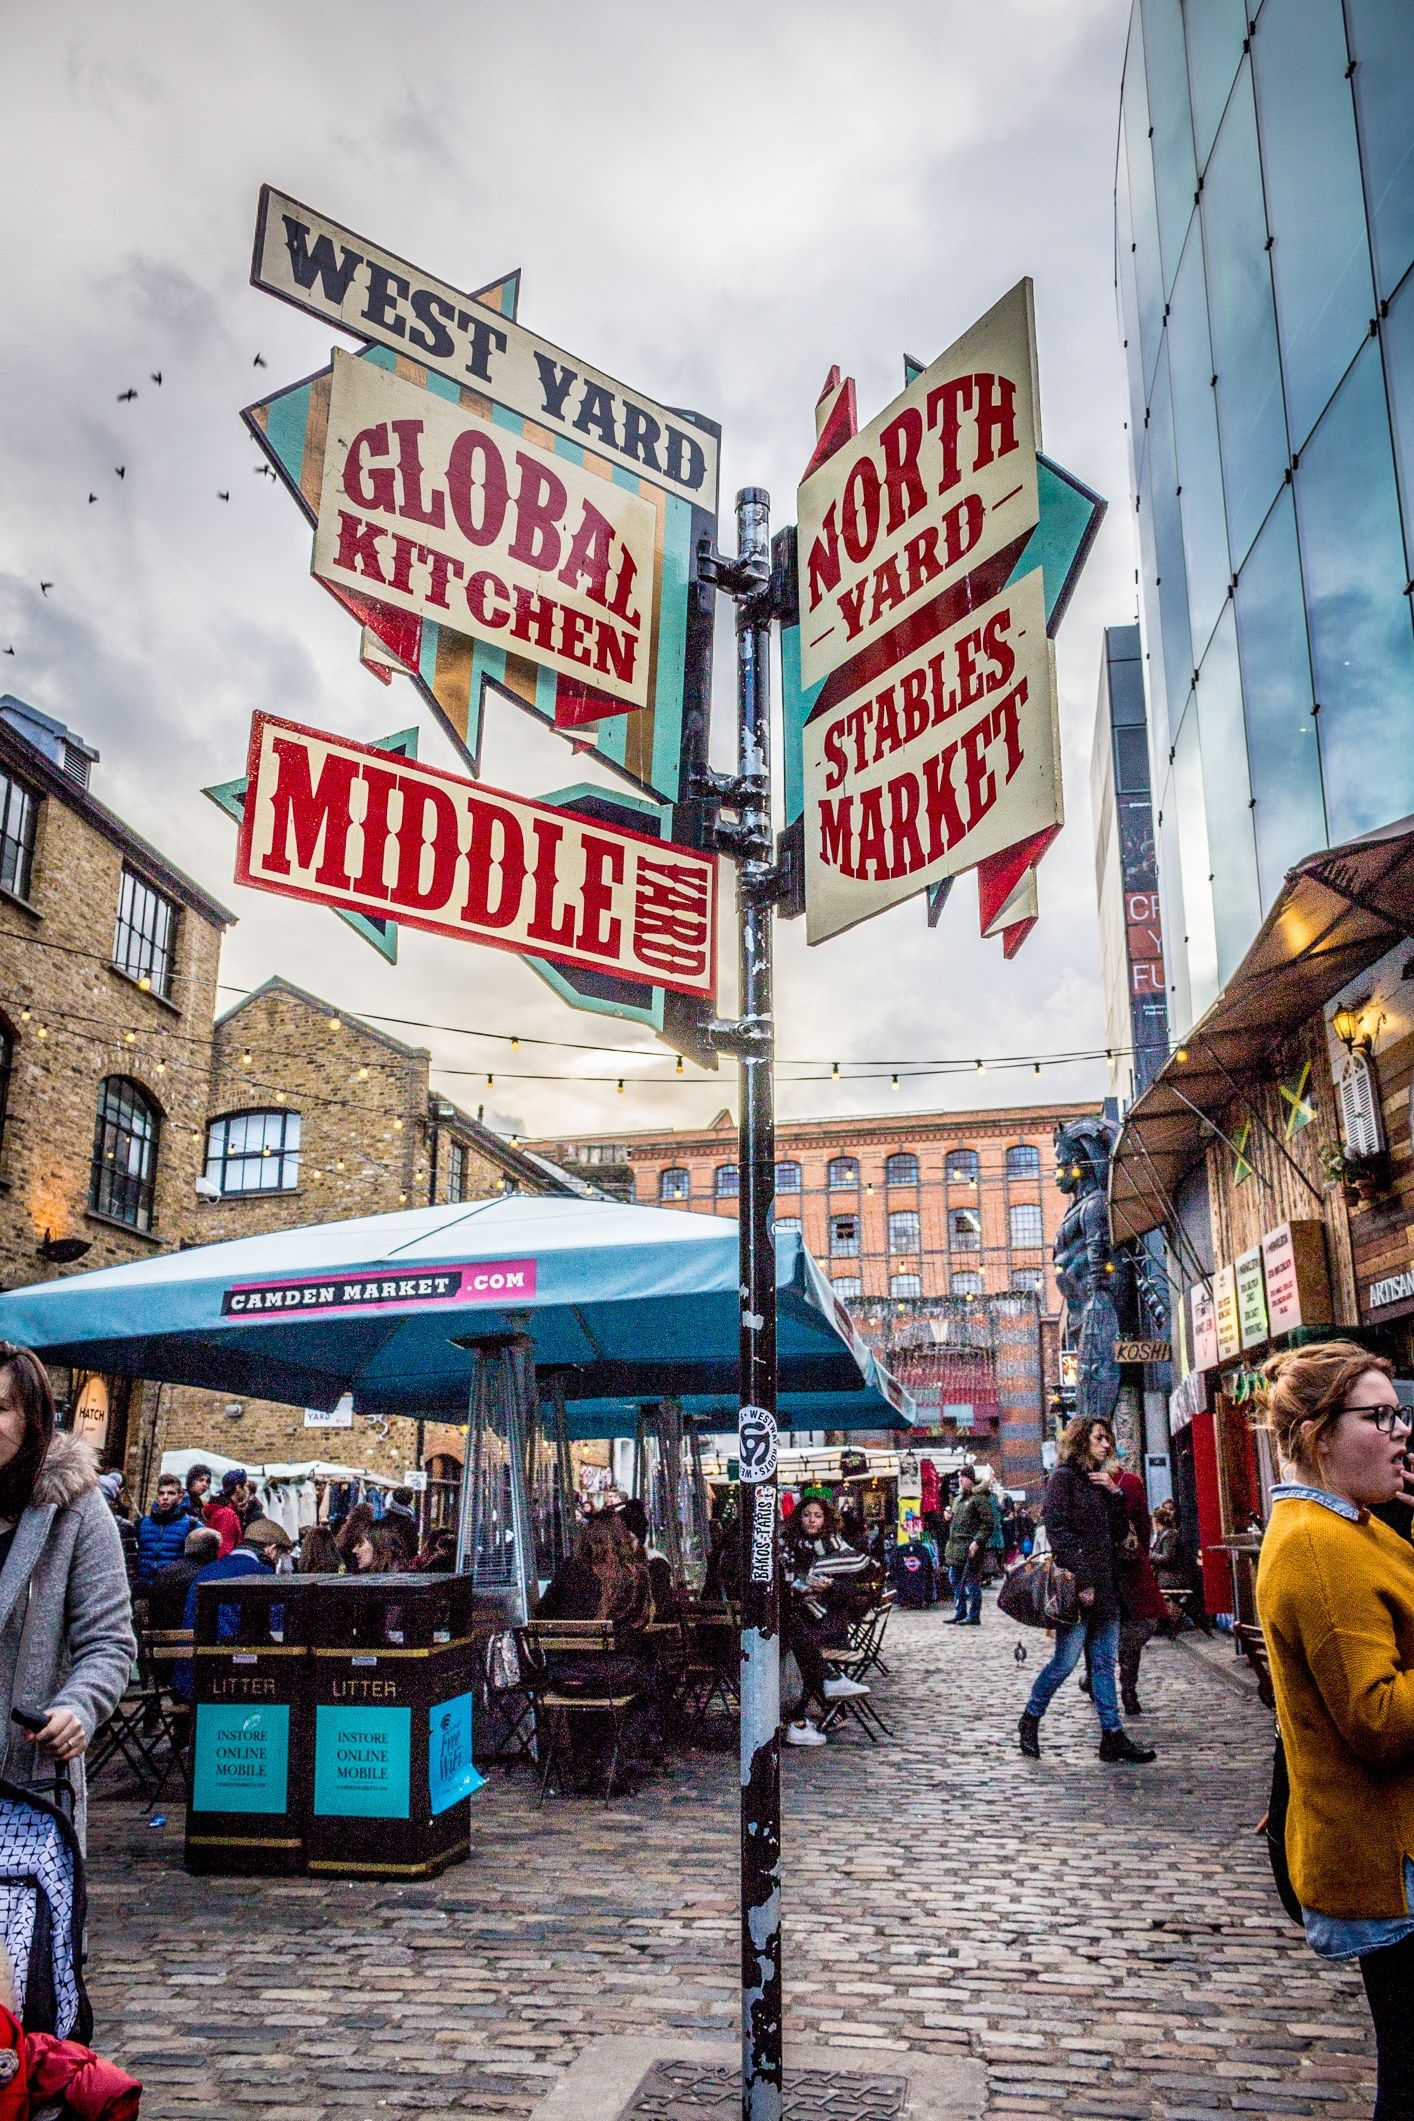 Camden is such a cool neighbourhood, and it's food market is no exception. It's located right along Regent's Canal, which makes for a great place to sit and eat your market purchases. Any type of food you could imagine is sold in this market, from handmade pasta to banh mi to gourmet mac n' cheese to kabob sandwiches, there's literally any type of cuisine you could possibly want